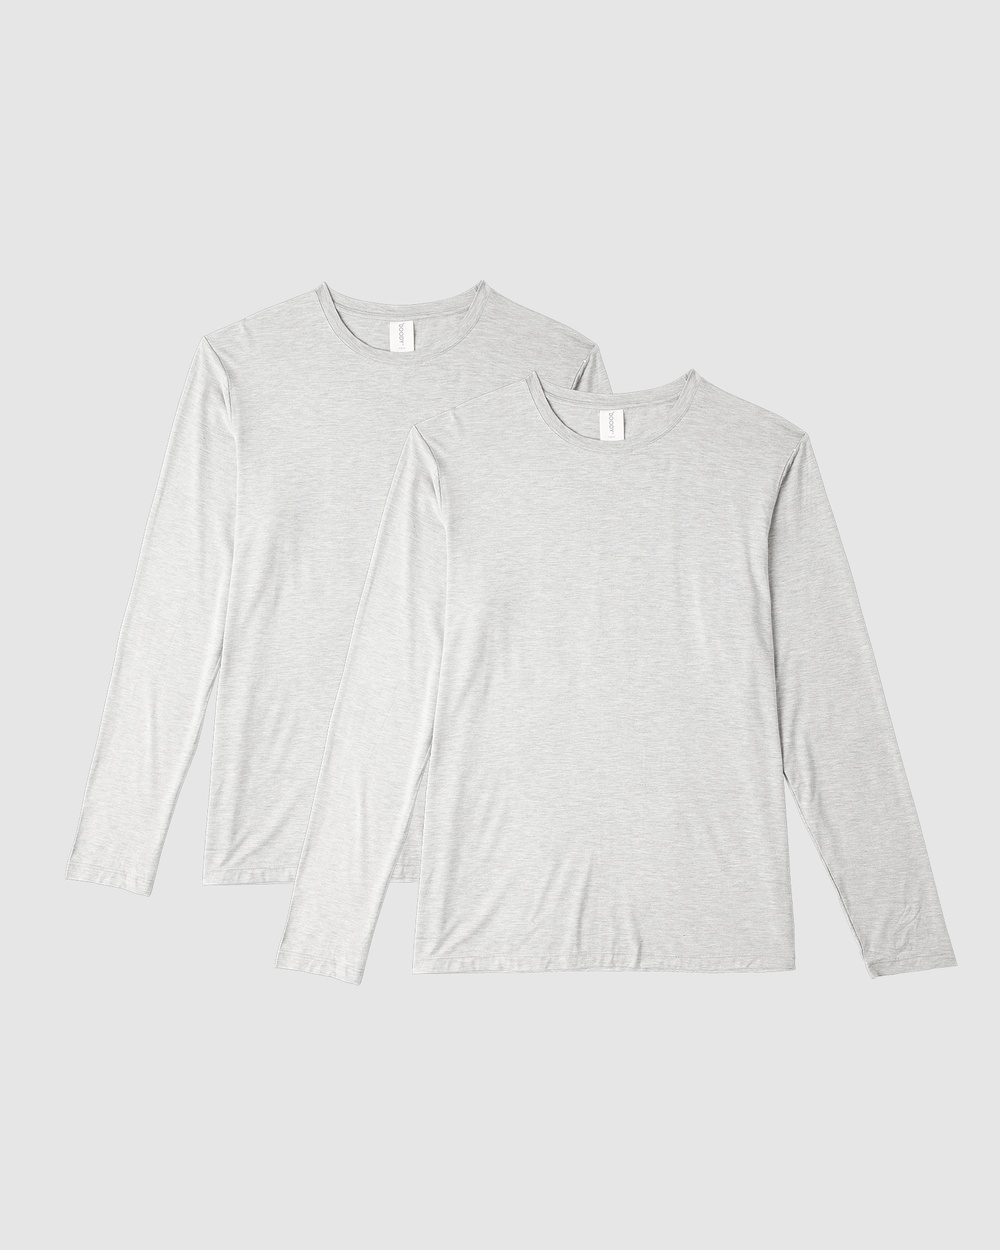 Boody Organic Bamboo Eco Wear - 2 Pack Long Sleeve Crew Neck T Shirt - Long Sleeve T-Shirts (Light Grey Marl) 2 Pack Long Sleeve Crew Neck T-Shirt